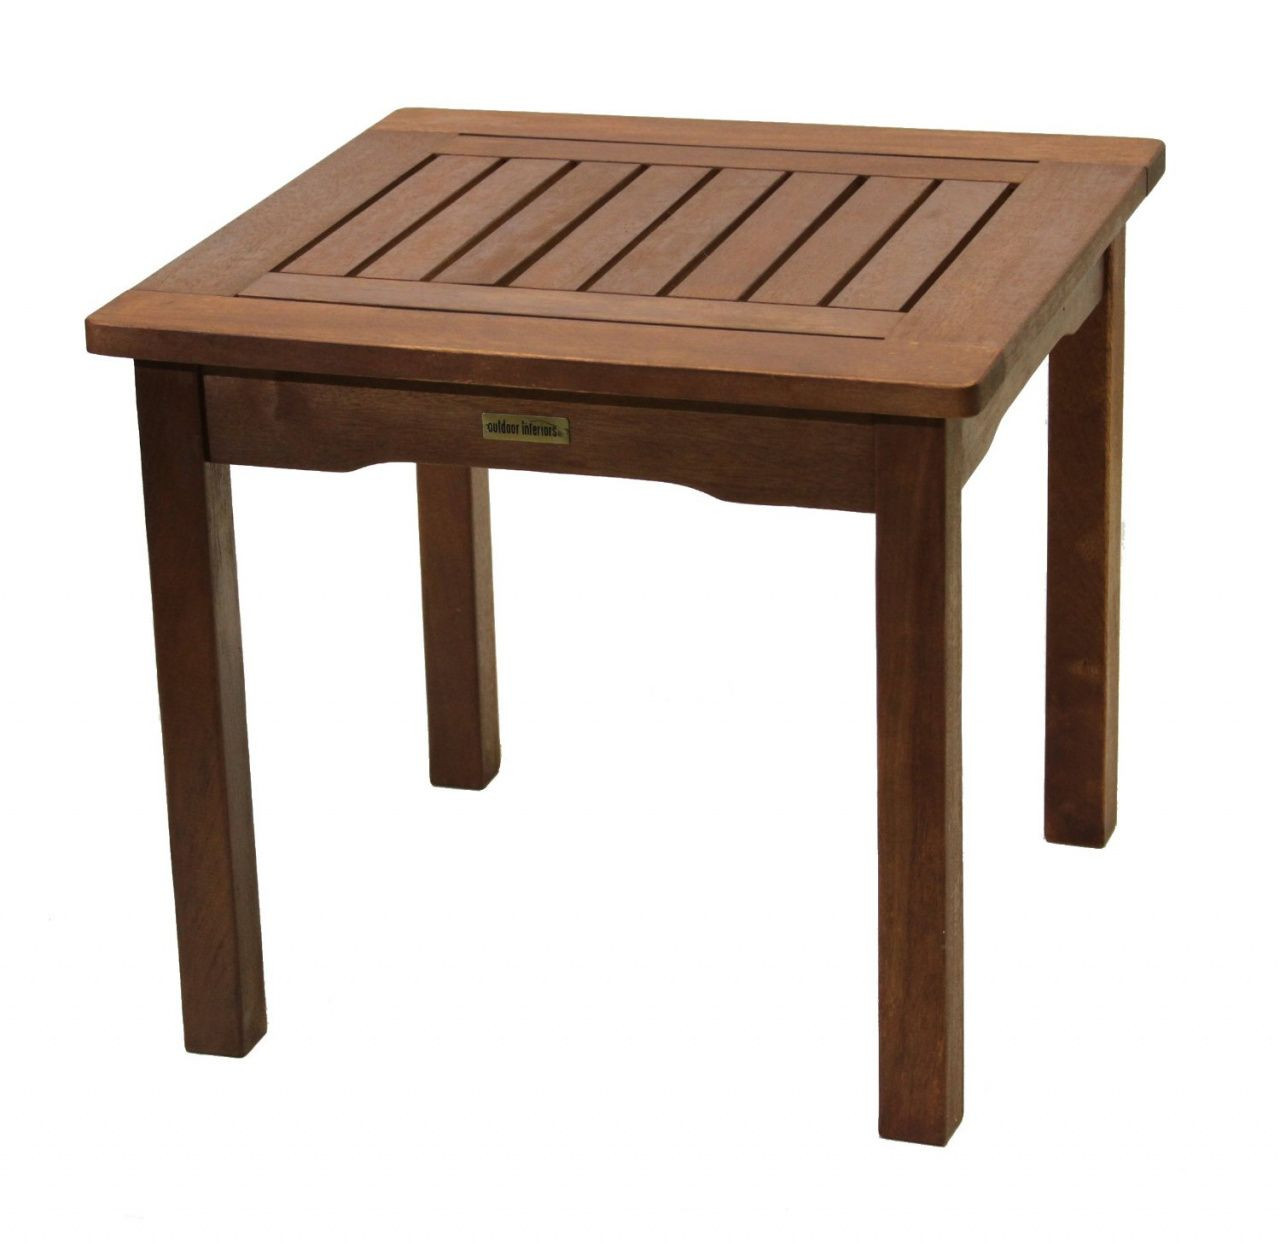 small wooden garden table on Small Wooden Garden Table Office Furniture For Home Check More At Http Www Nikkitsfun Com Small Wooden G Wooden Garden Table Outdoor End Tables Patio Table